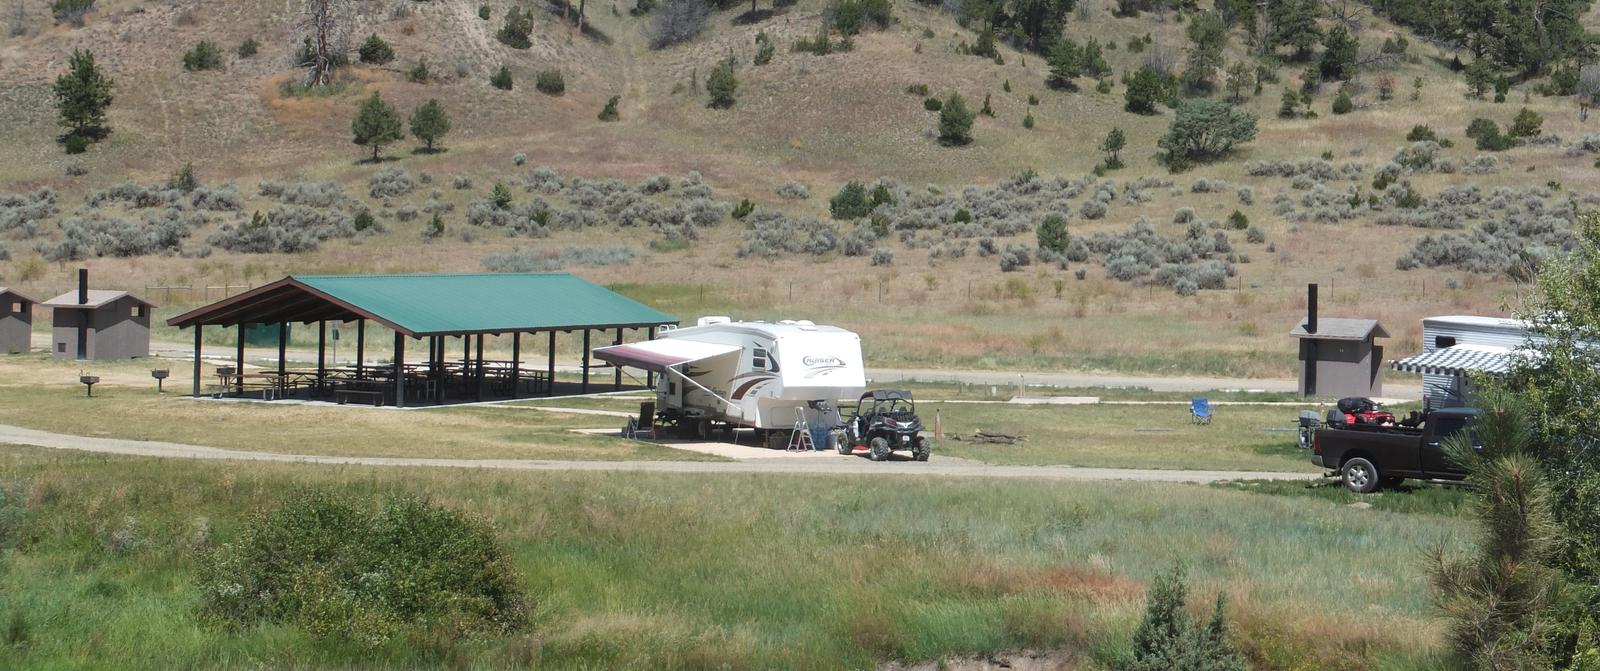 Hellgate Campground - Lewis and Clark Shelter Area